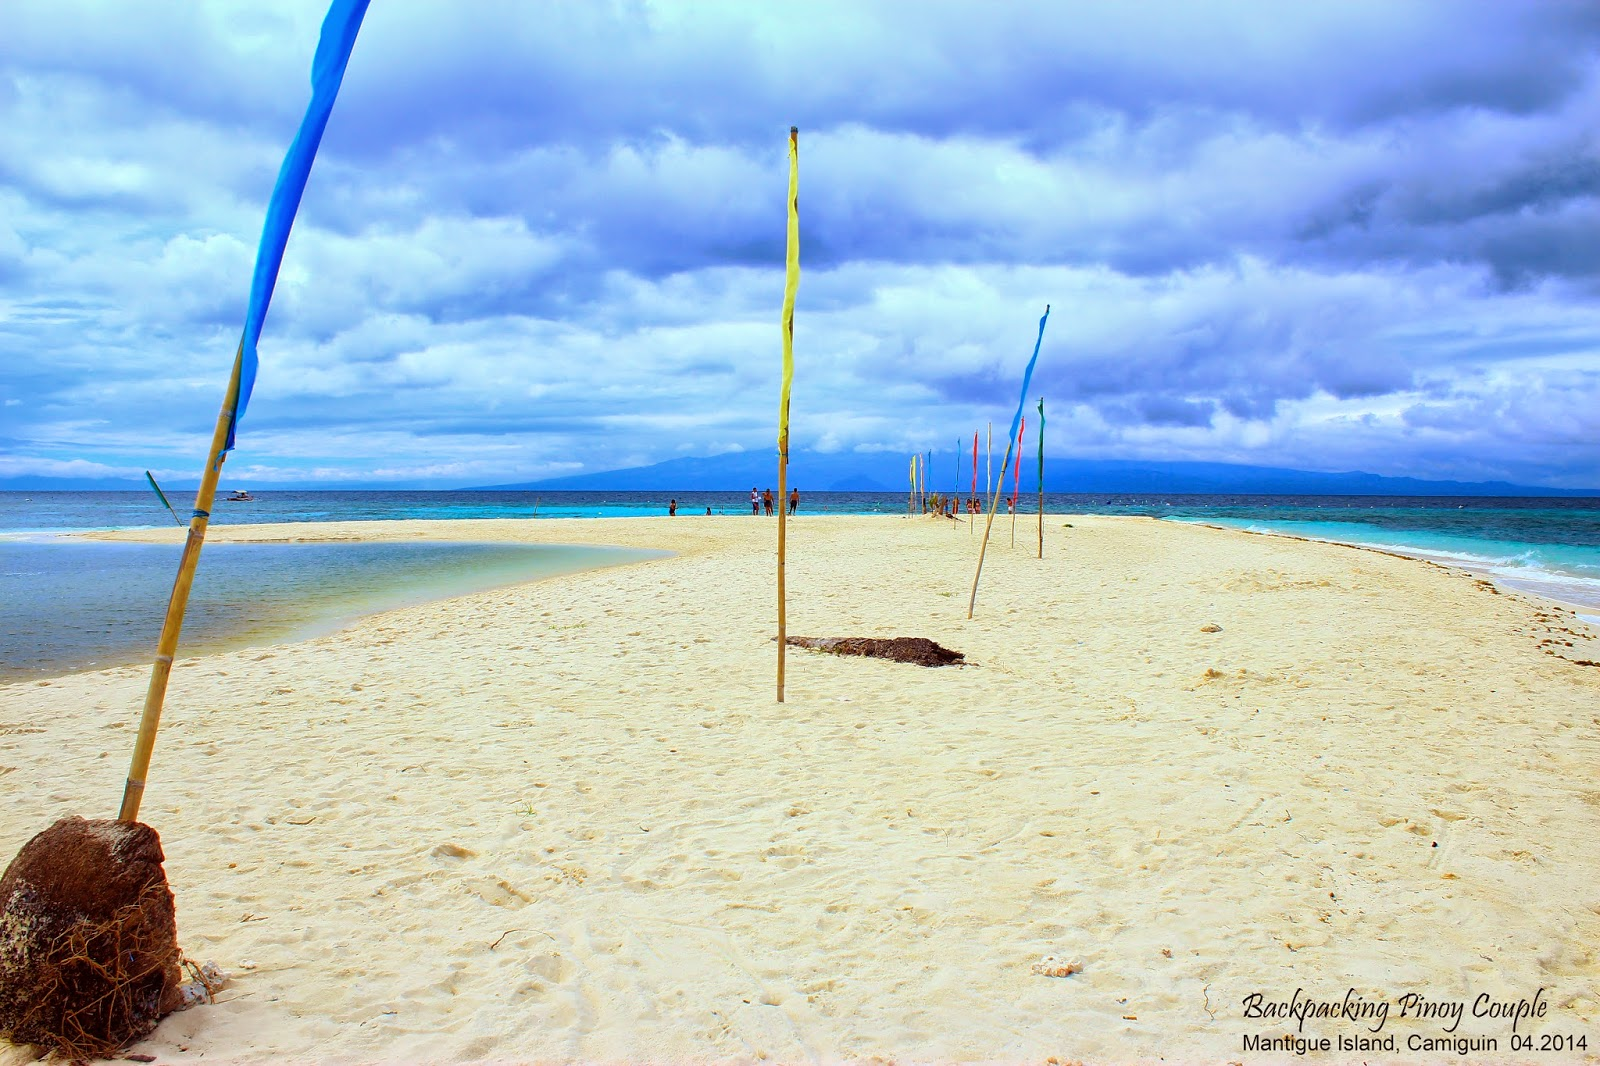 Backpacking Pinoy Couple, Backpacking Philippines, Northern Mindanao, Philippine travel, Camiguin, How to go to Camiguin, what to do in camiguin, where to go in camiguin, Camiguin roadtrip, road trip, Camiguin Itinerary, motor riding in Camiguin, Mantigue Island